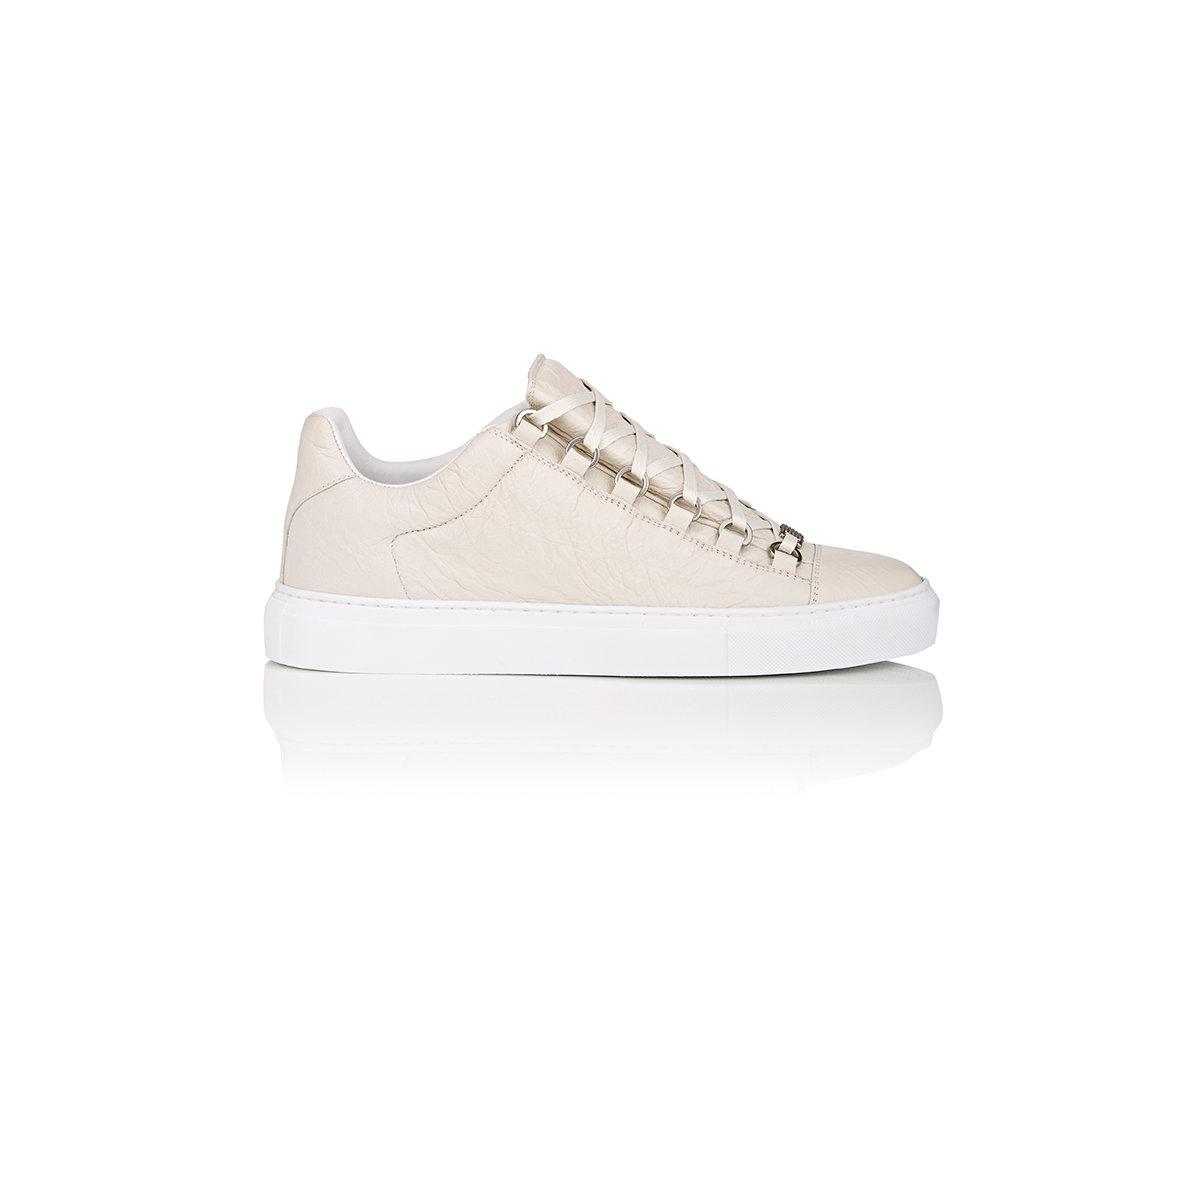 balenciaga arena low top sneakers in white lyst. Black Bedroom Furniture Sets. Home Design Ideas